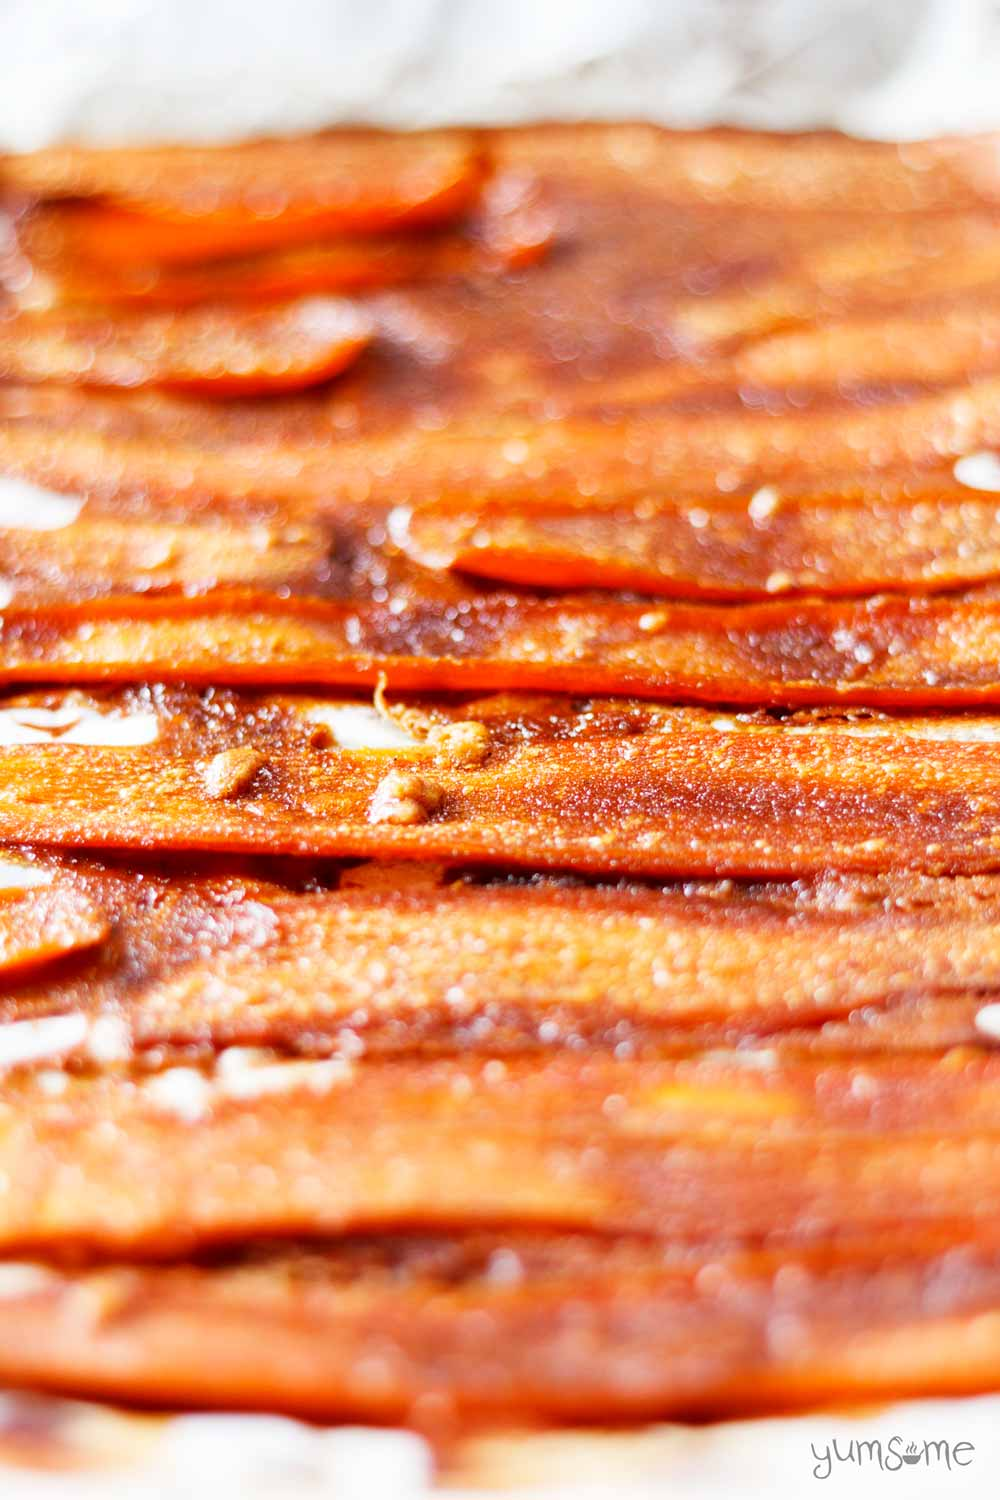 This Delicious, Easytomake Vegan Bacon Substitute Is Made From Carrots And